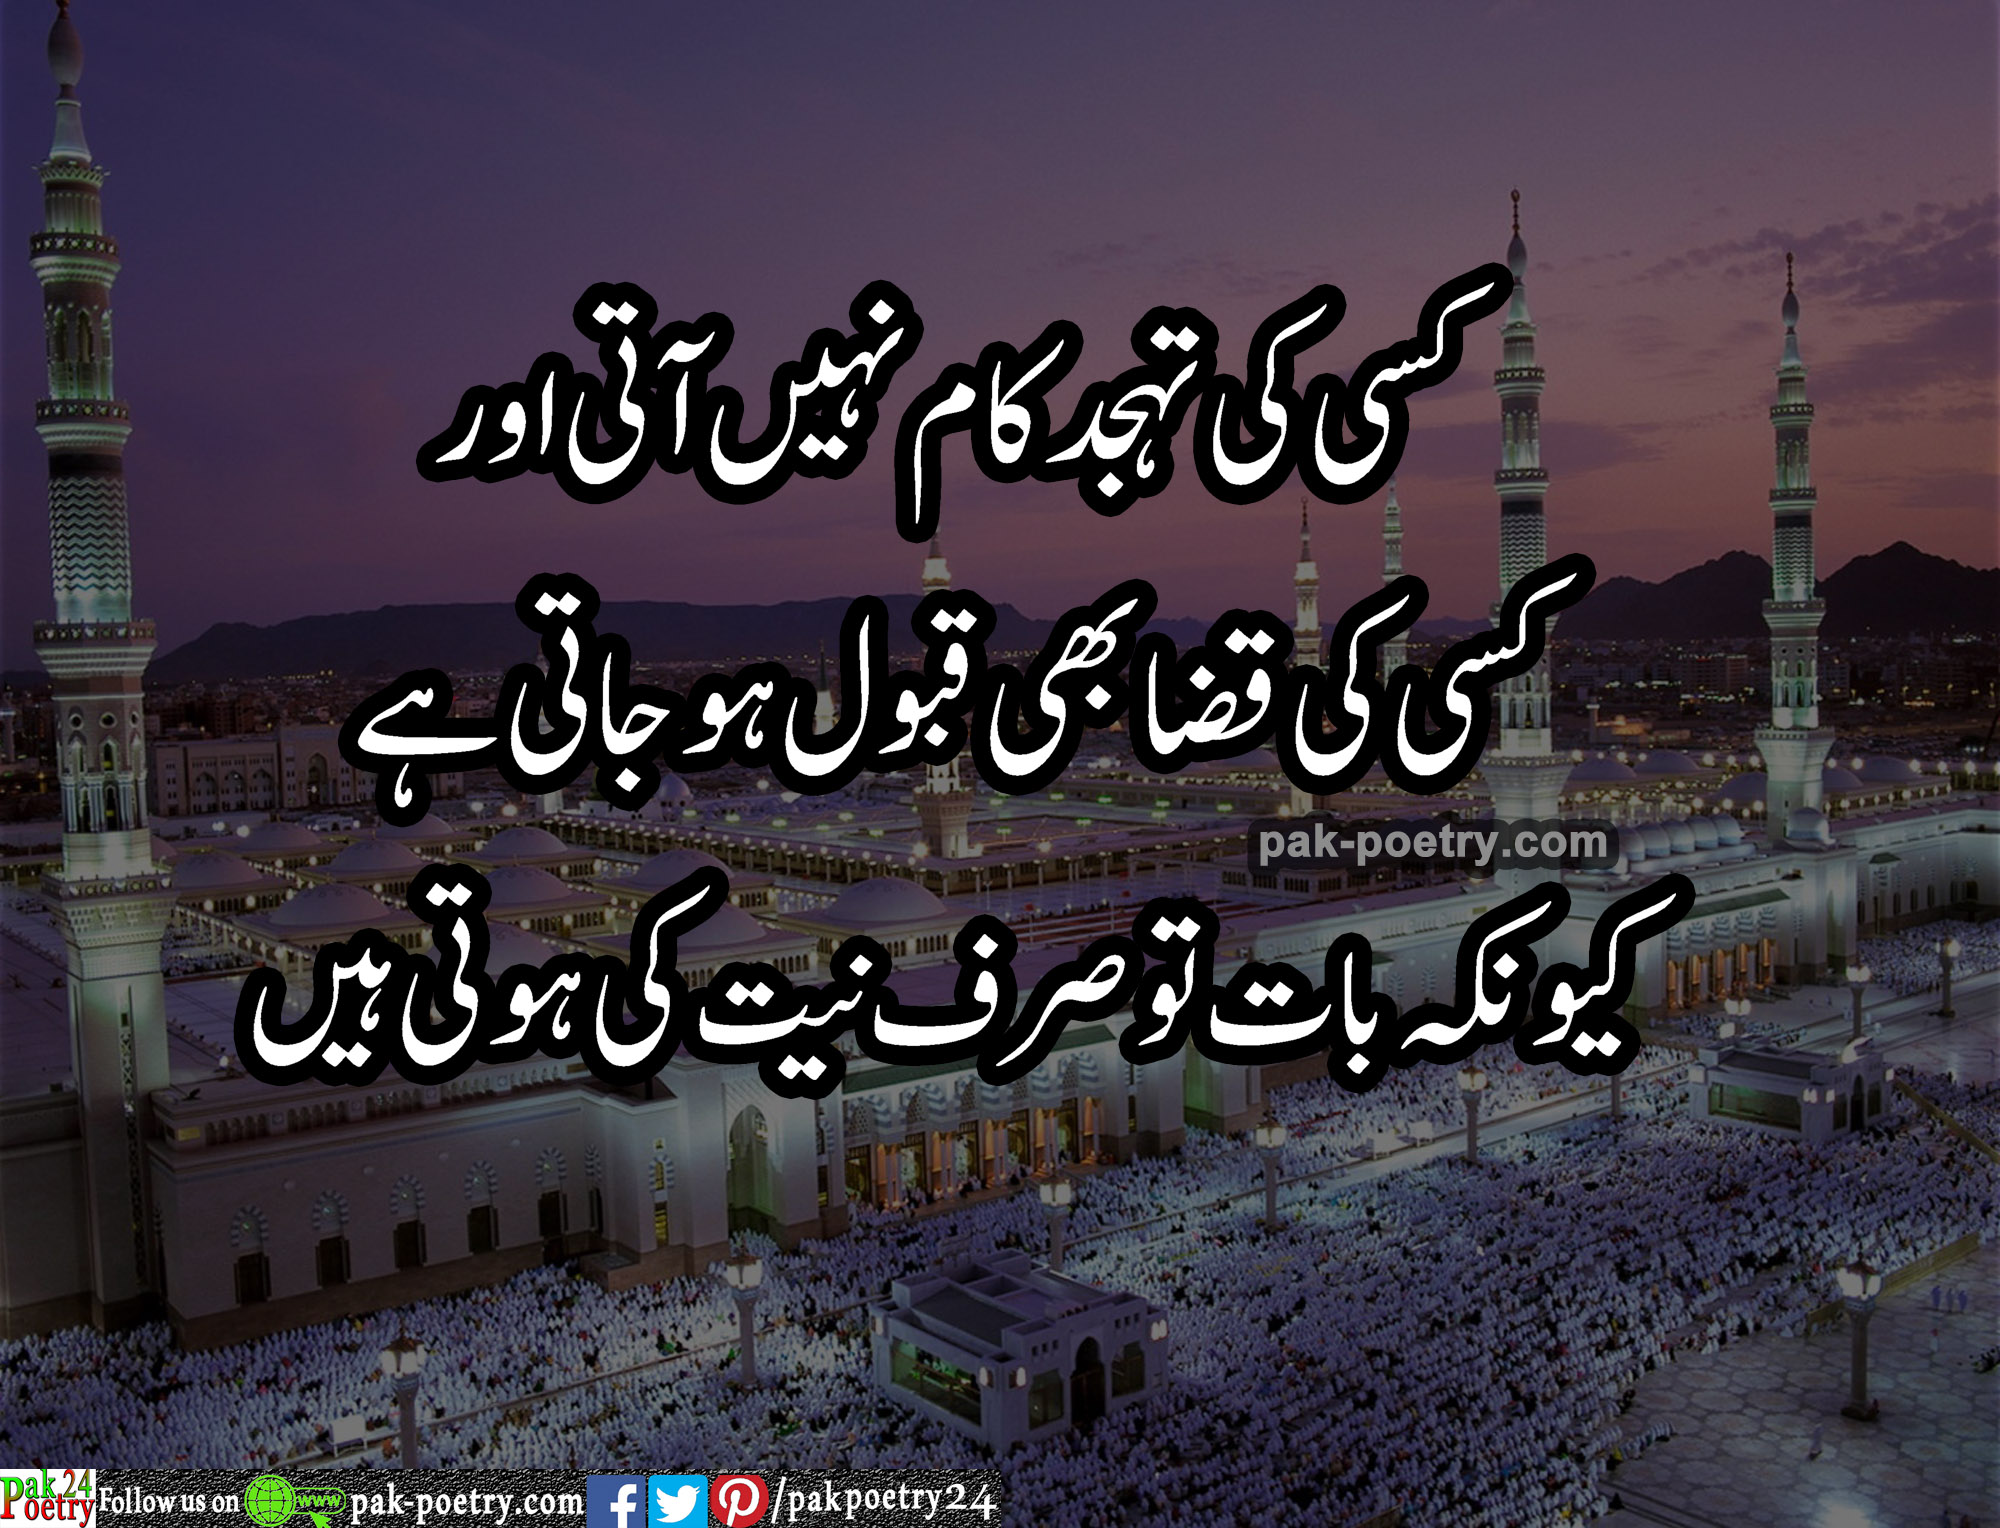 reality quotes, reality poetry in urdu, reality poetry, quotes about reality in urdu, poetry about reality in urdu, sad reality, poetry reality, poetry on reality, reality best poetry urdu, sad reality poetry in urdu, reality based poetry in urdu, poetry about reality, reality, Islamic poetry, Islamic images, Islamic poetry in urdu, Poetry Islamic, urdu Islamic poetry, allah Islamic poetry, Islamic poetry pics, Islamic poetry urdu, Islamic photos, dua Islamic poetry,